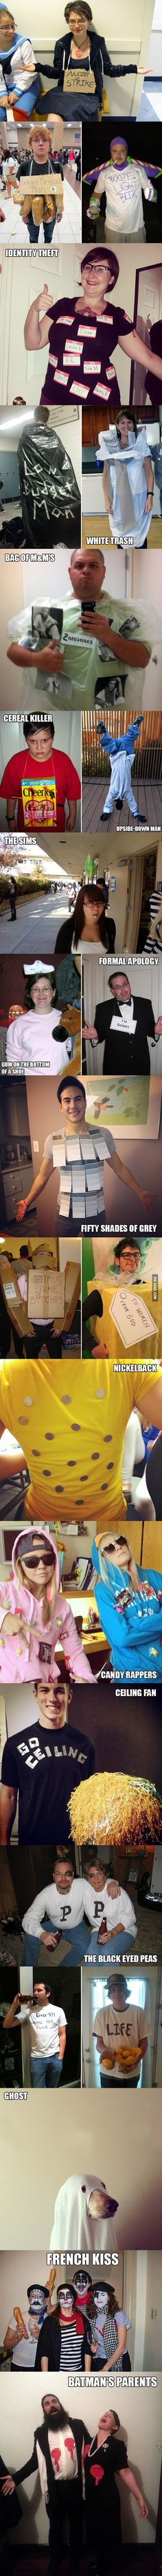 Last-minute Halloween costumes - 9GAG More